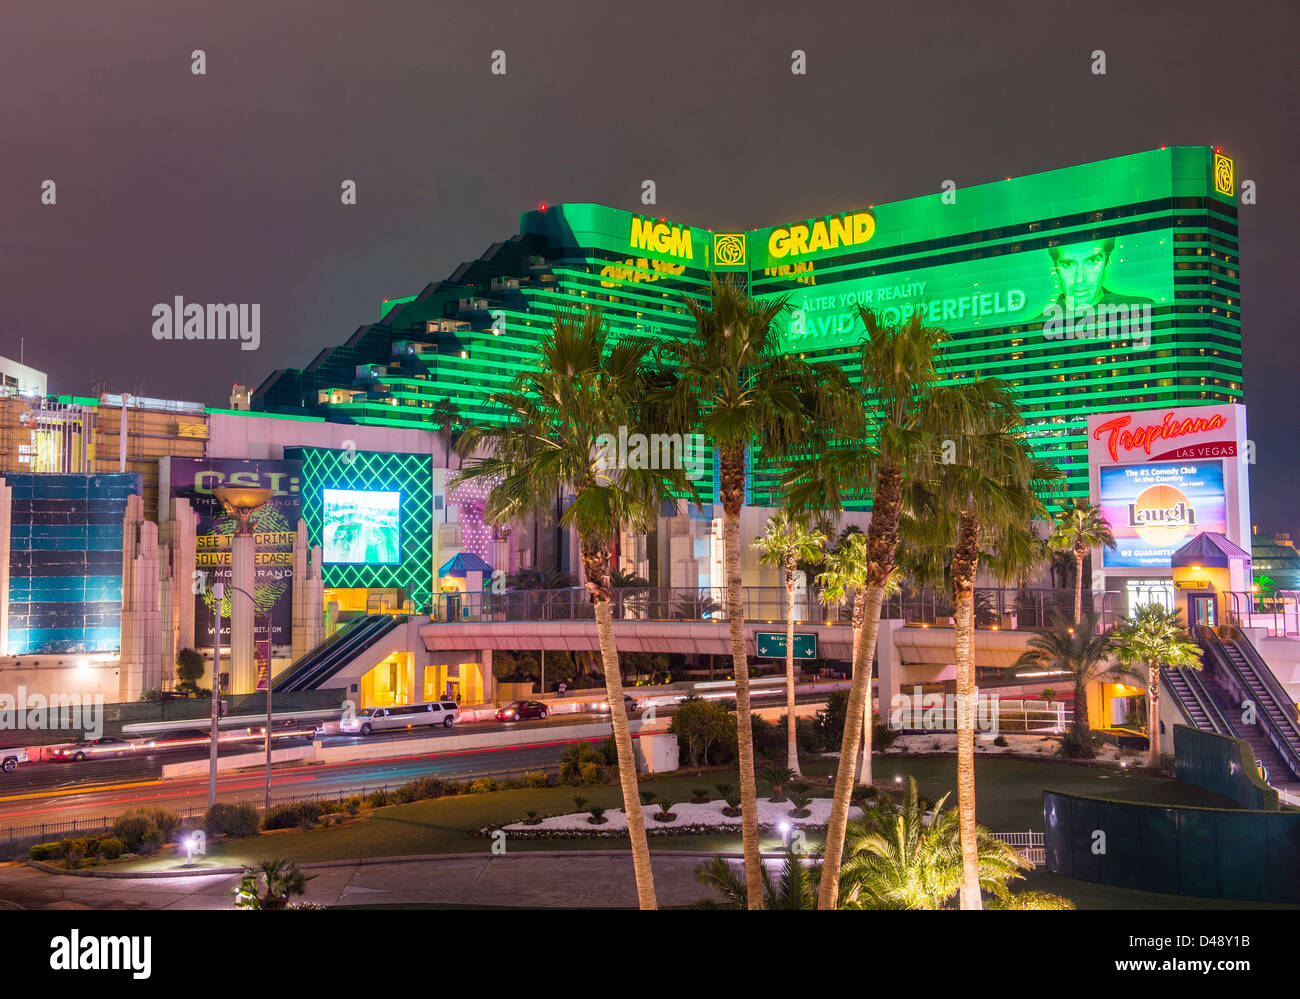 MGM hotel and casino in Las Vegas. - Stock Image